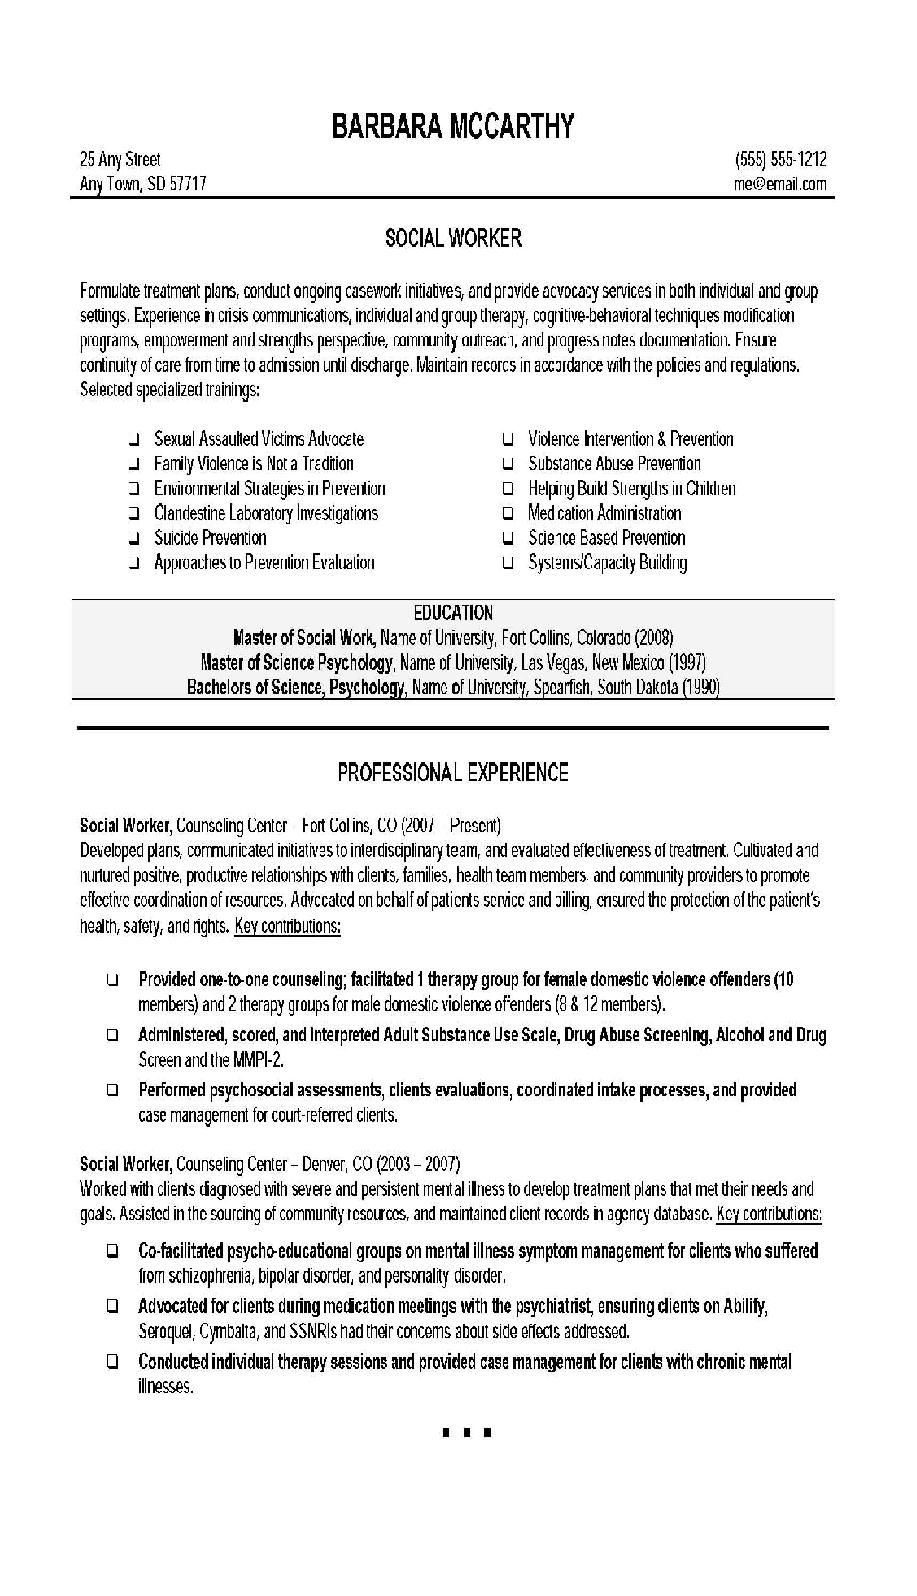 Sample Social Worker Resume Social Work Resume Examples The Best Click Here Download This Worker .